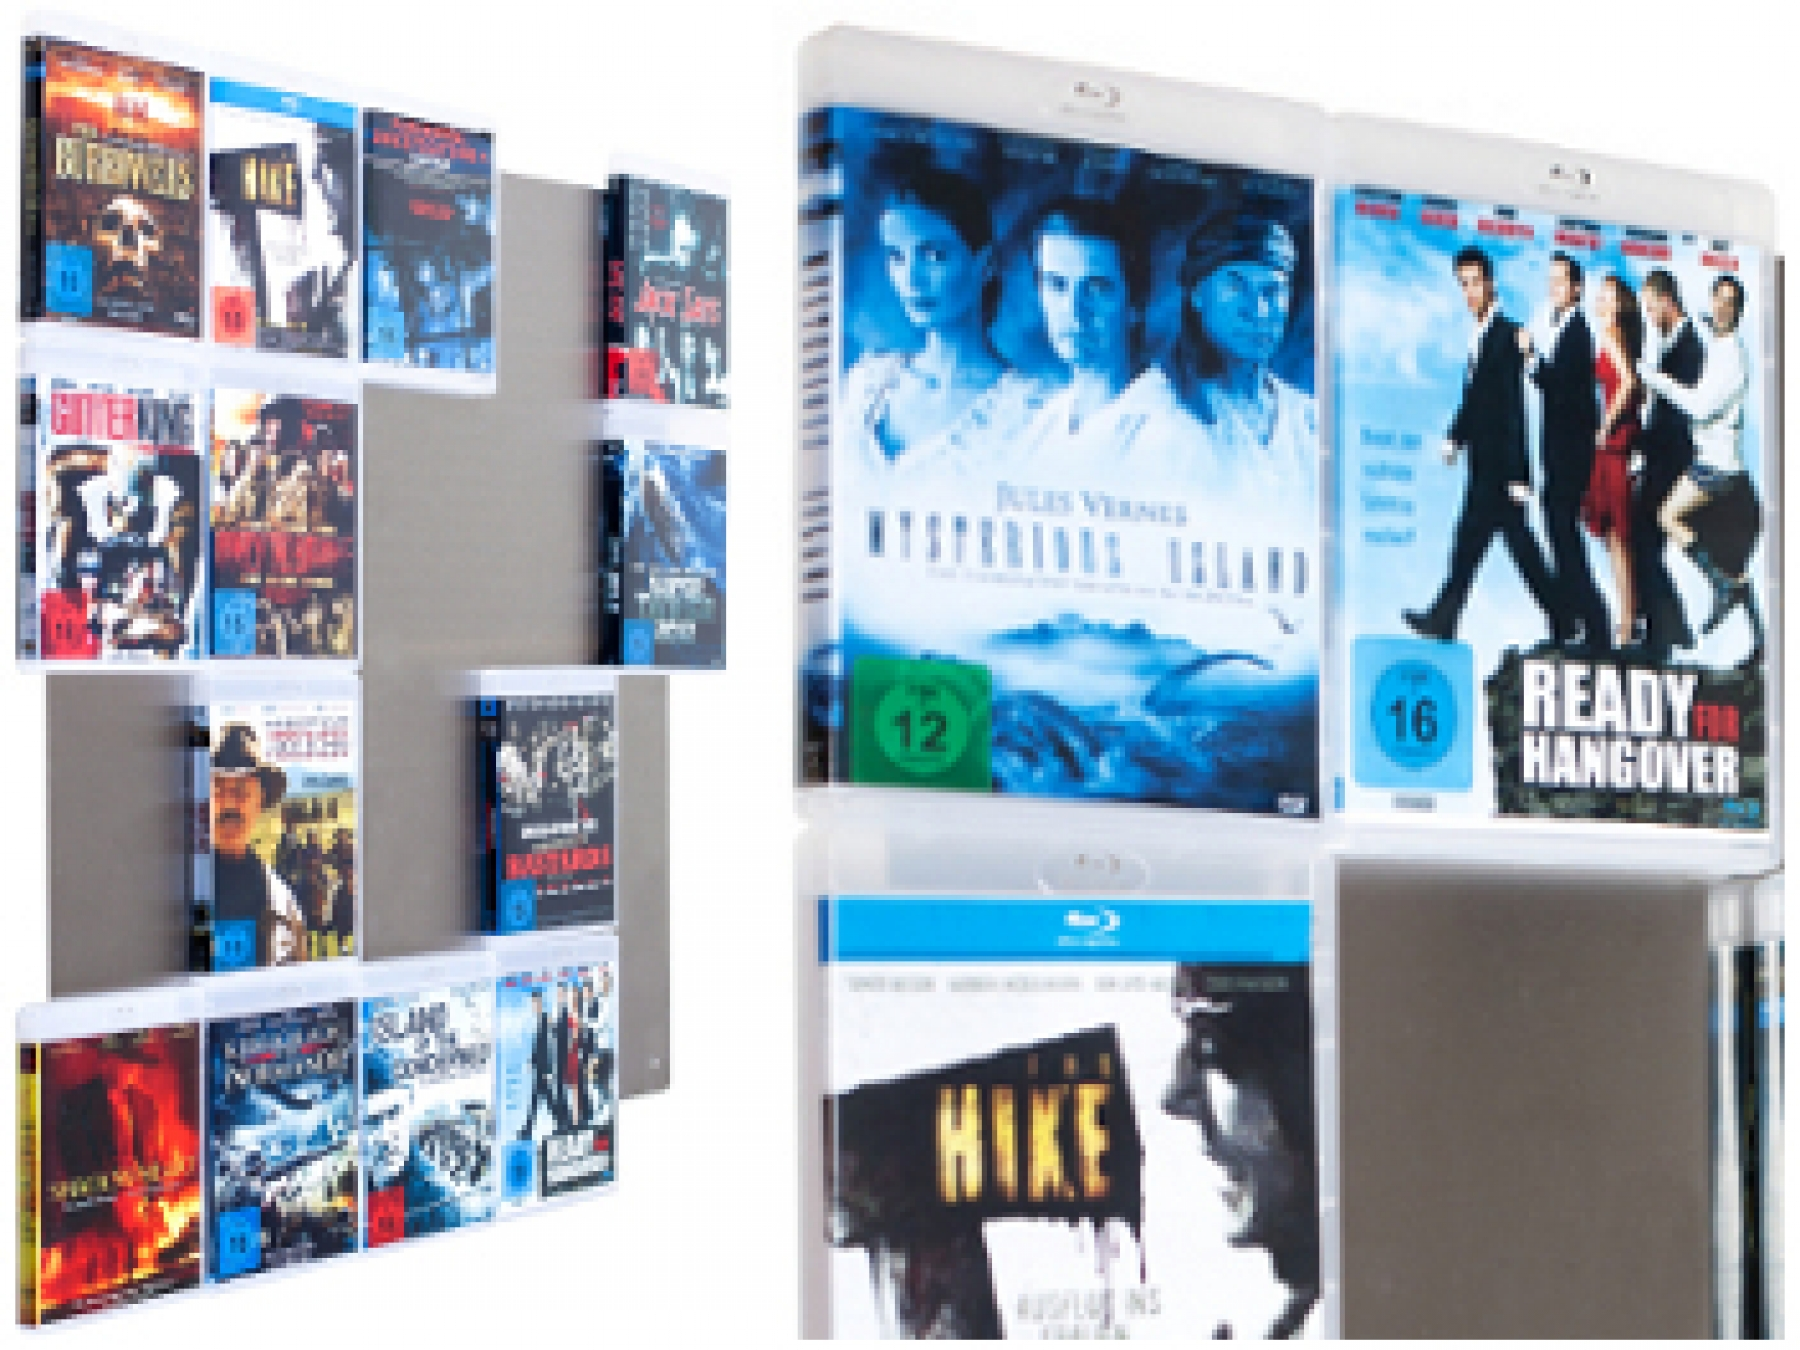 cd wall mehr als nur ein blu ray regal zaubern sie sich ein eigenes heimkino mit einem blu. Black Bedroom Furniture Sets. Home Design Ideas